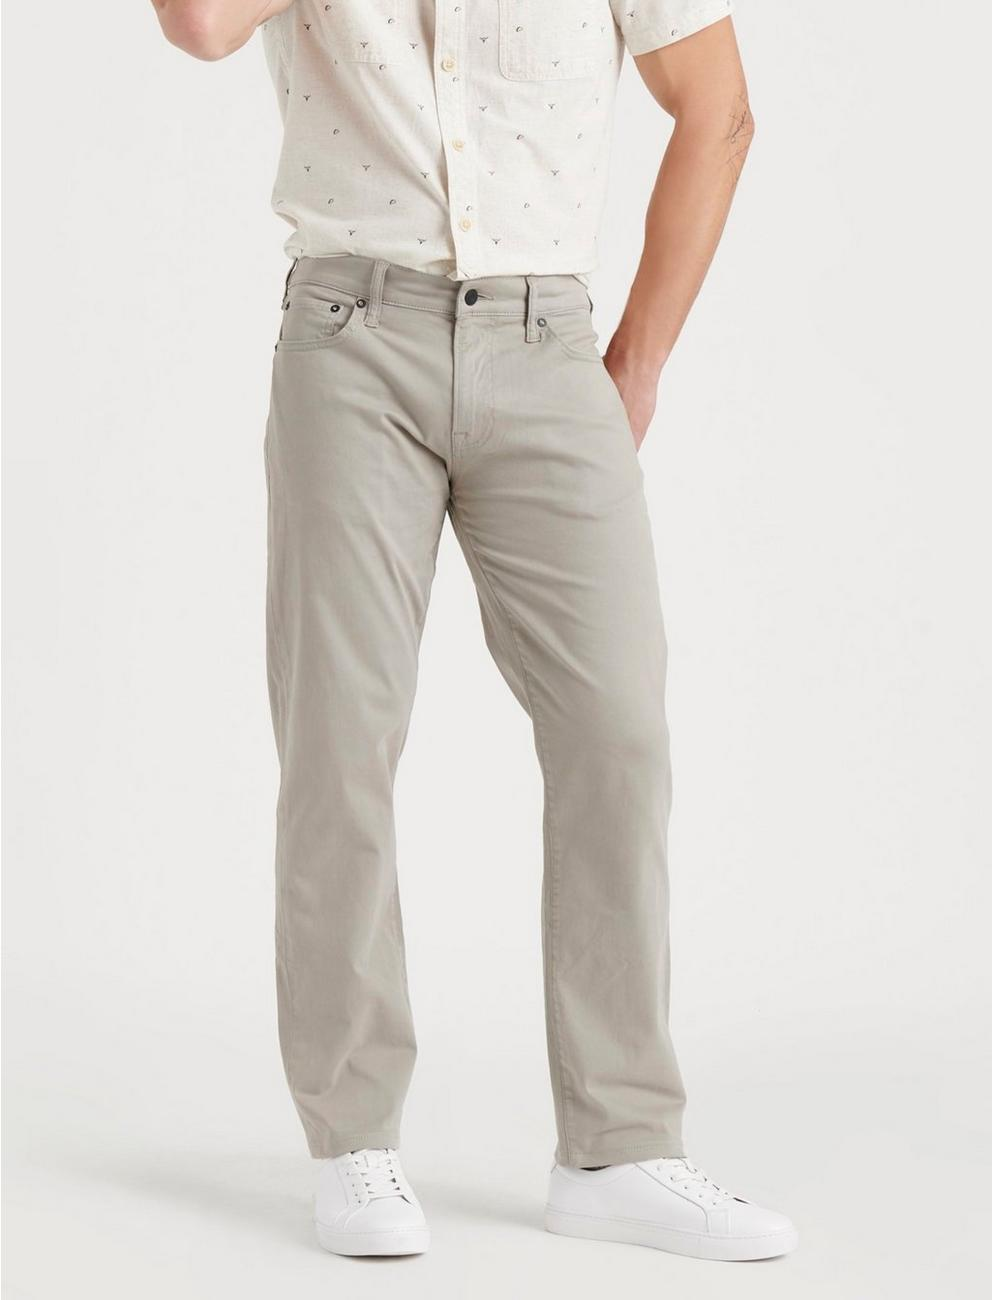 221 STRAIGHT STRETCH SATEEN JEAN, ROCKAWAY GREY